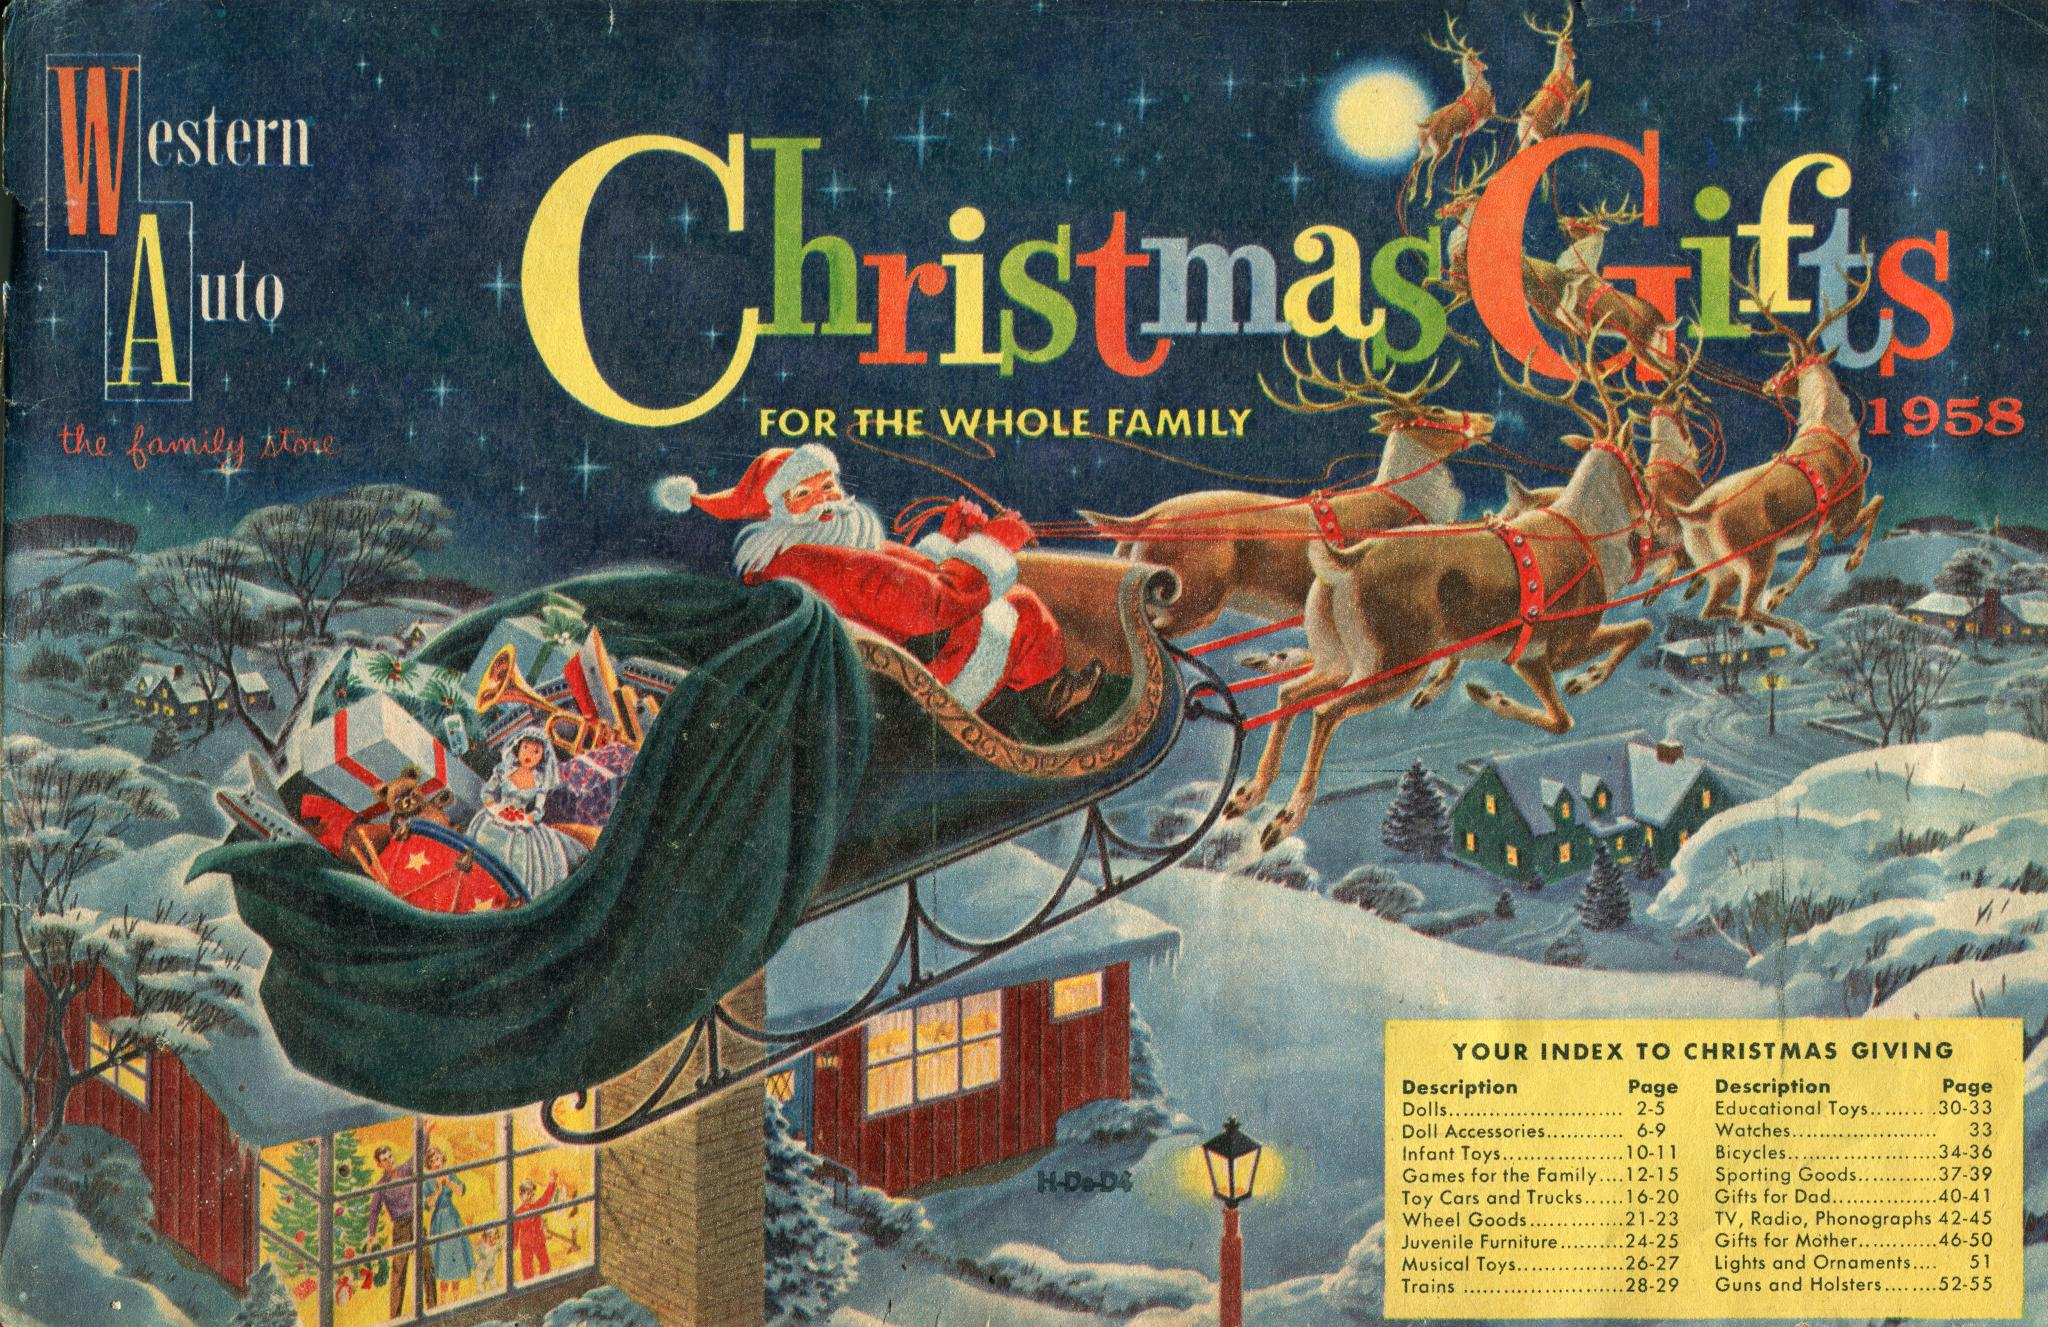 Western Auto Christmas Gifts 1958 catalog